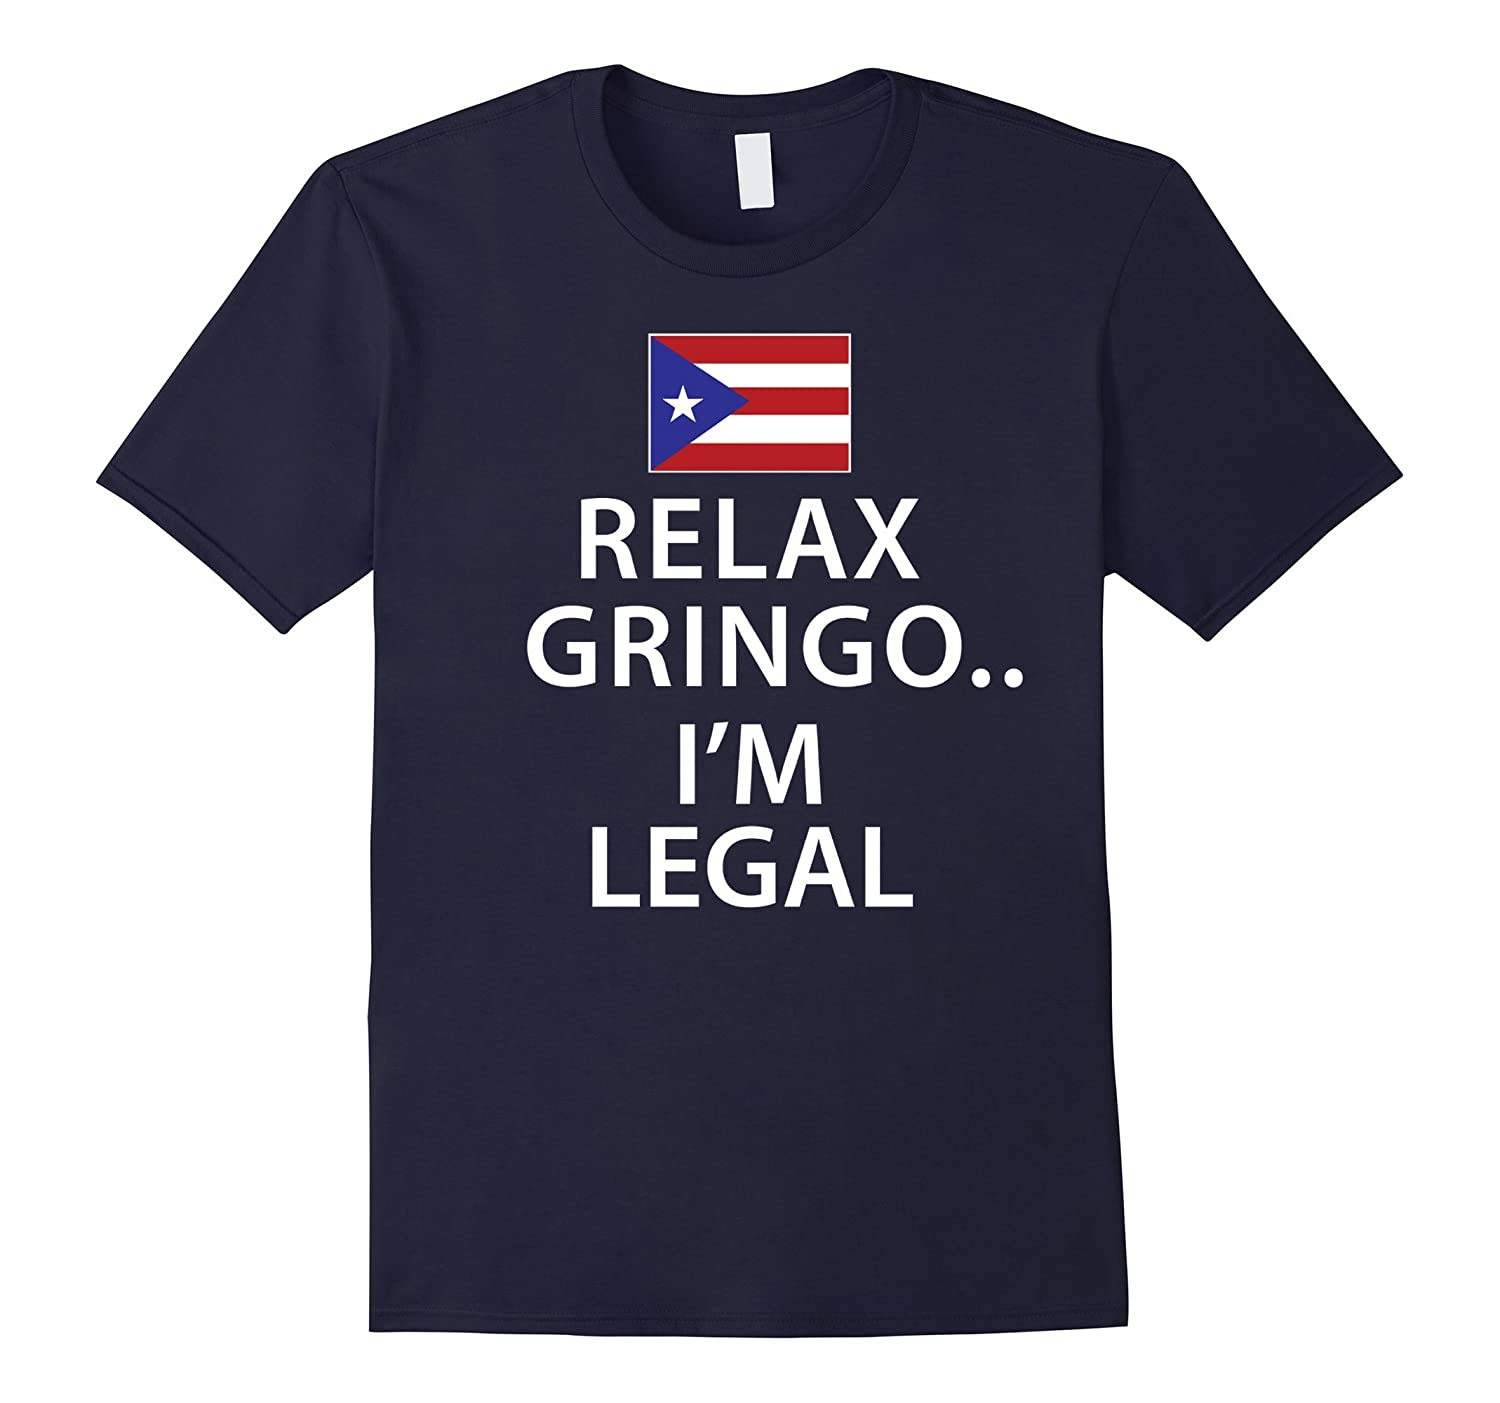 Relax Gringo Im Legal Shirt for Men Women Kids-TD